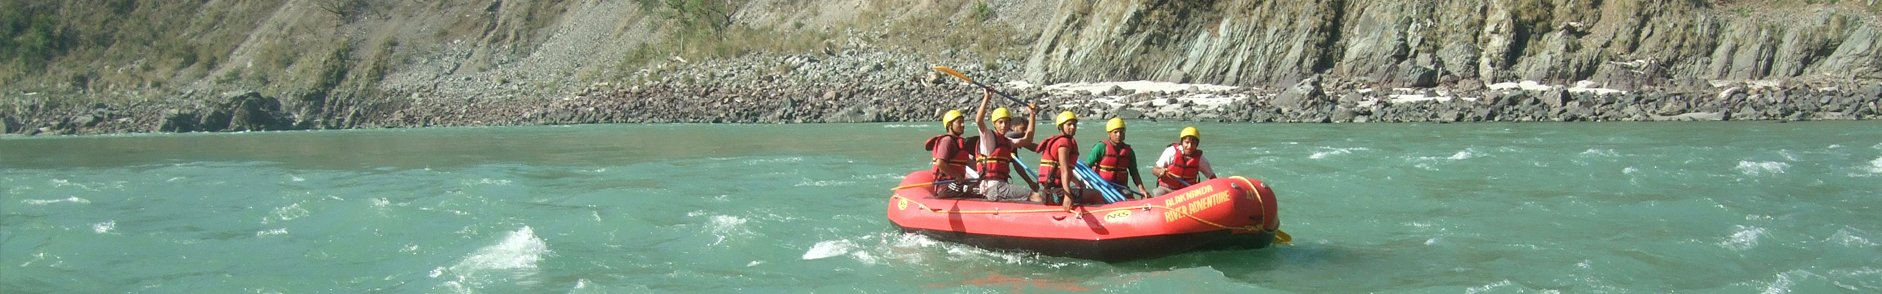 Kaudiyala Rishikesh River Rafting Tour